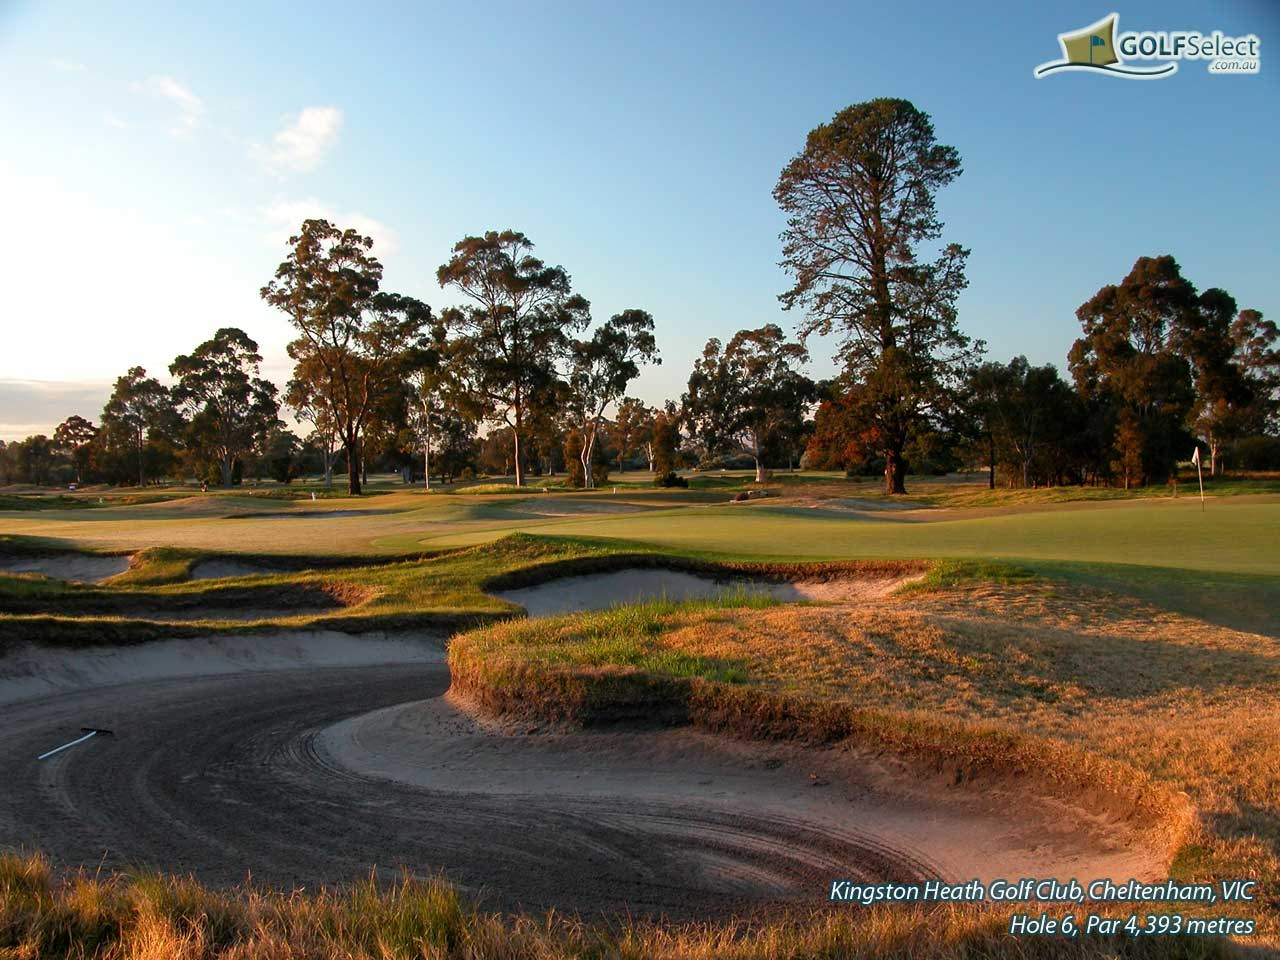 Kingston Heath Golf Club Hole 6